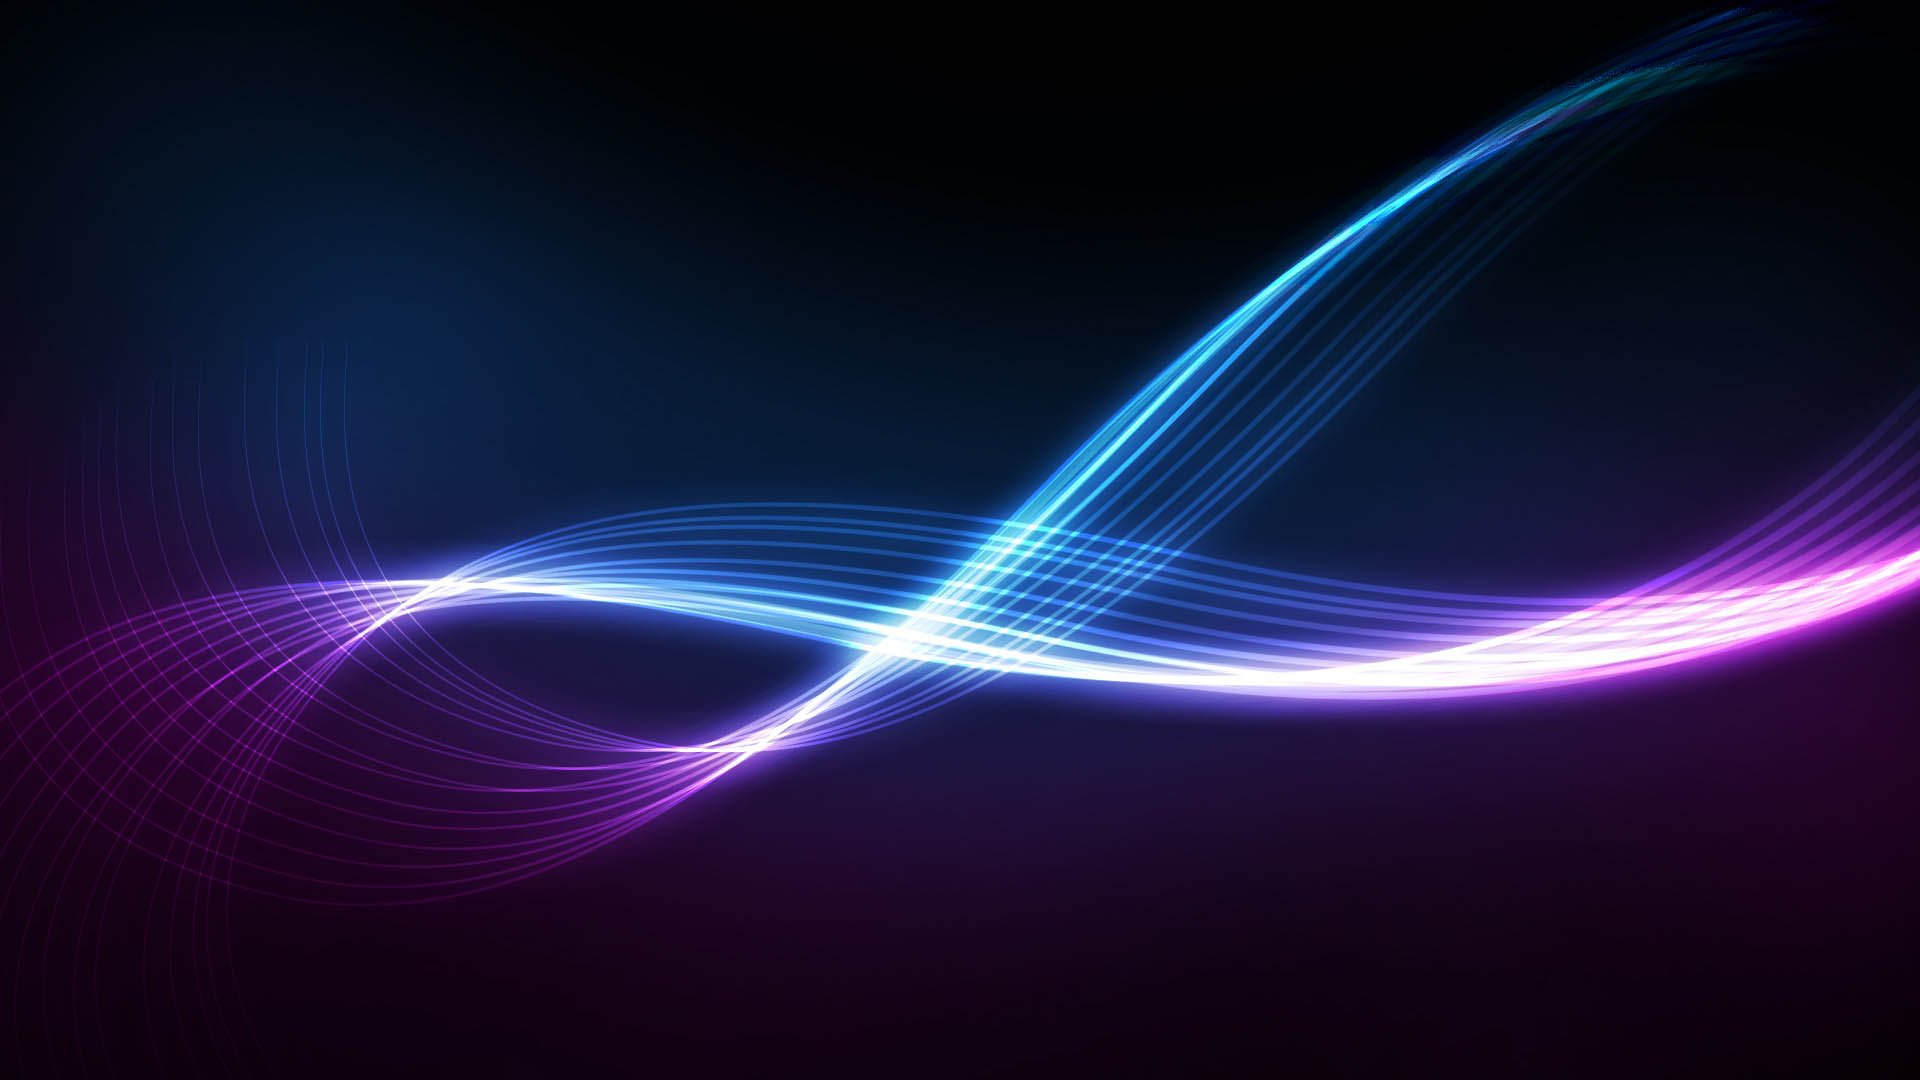 Wallpaper Abstract 1080p 1920x1080